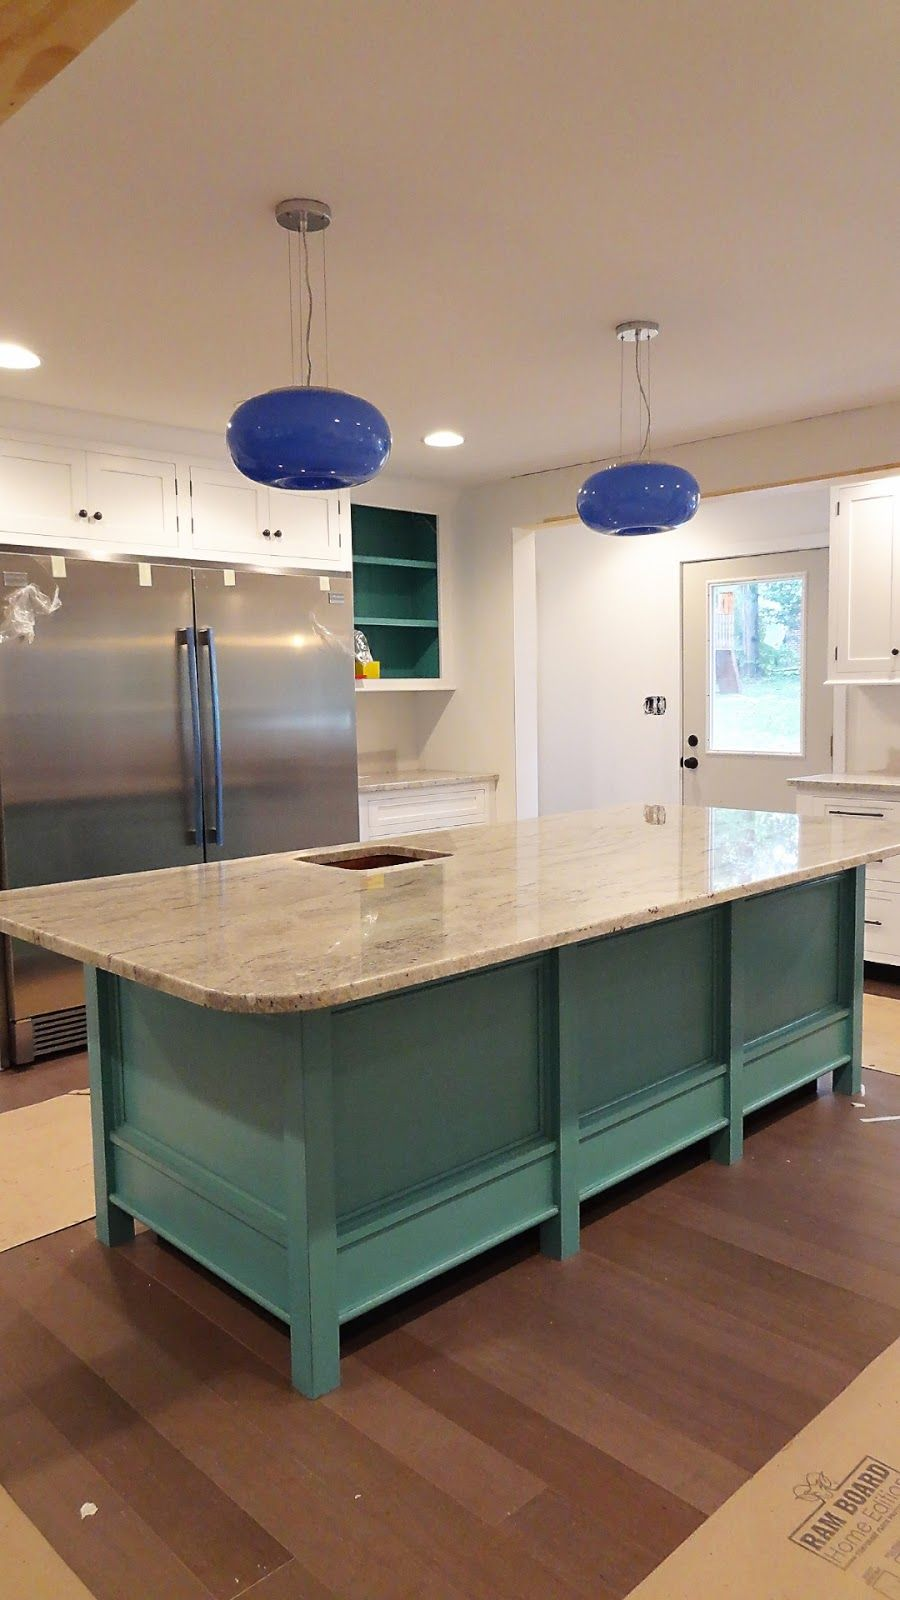 Counter Tops An Endless Search For The One Curved Kitchen Round Kitchen Island Top Kitchen Trends